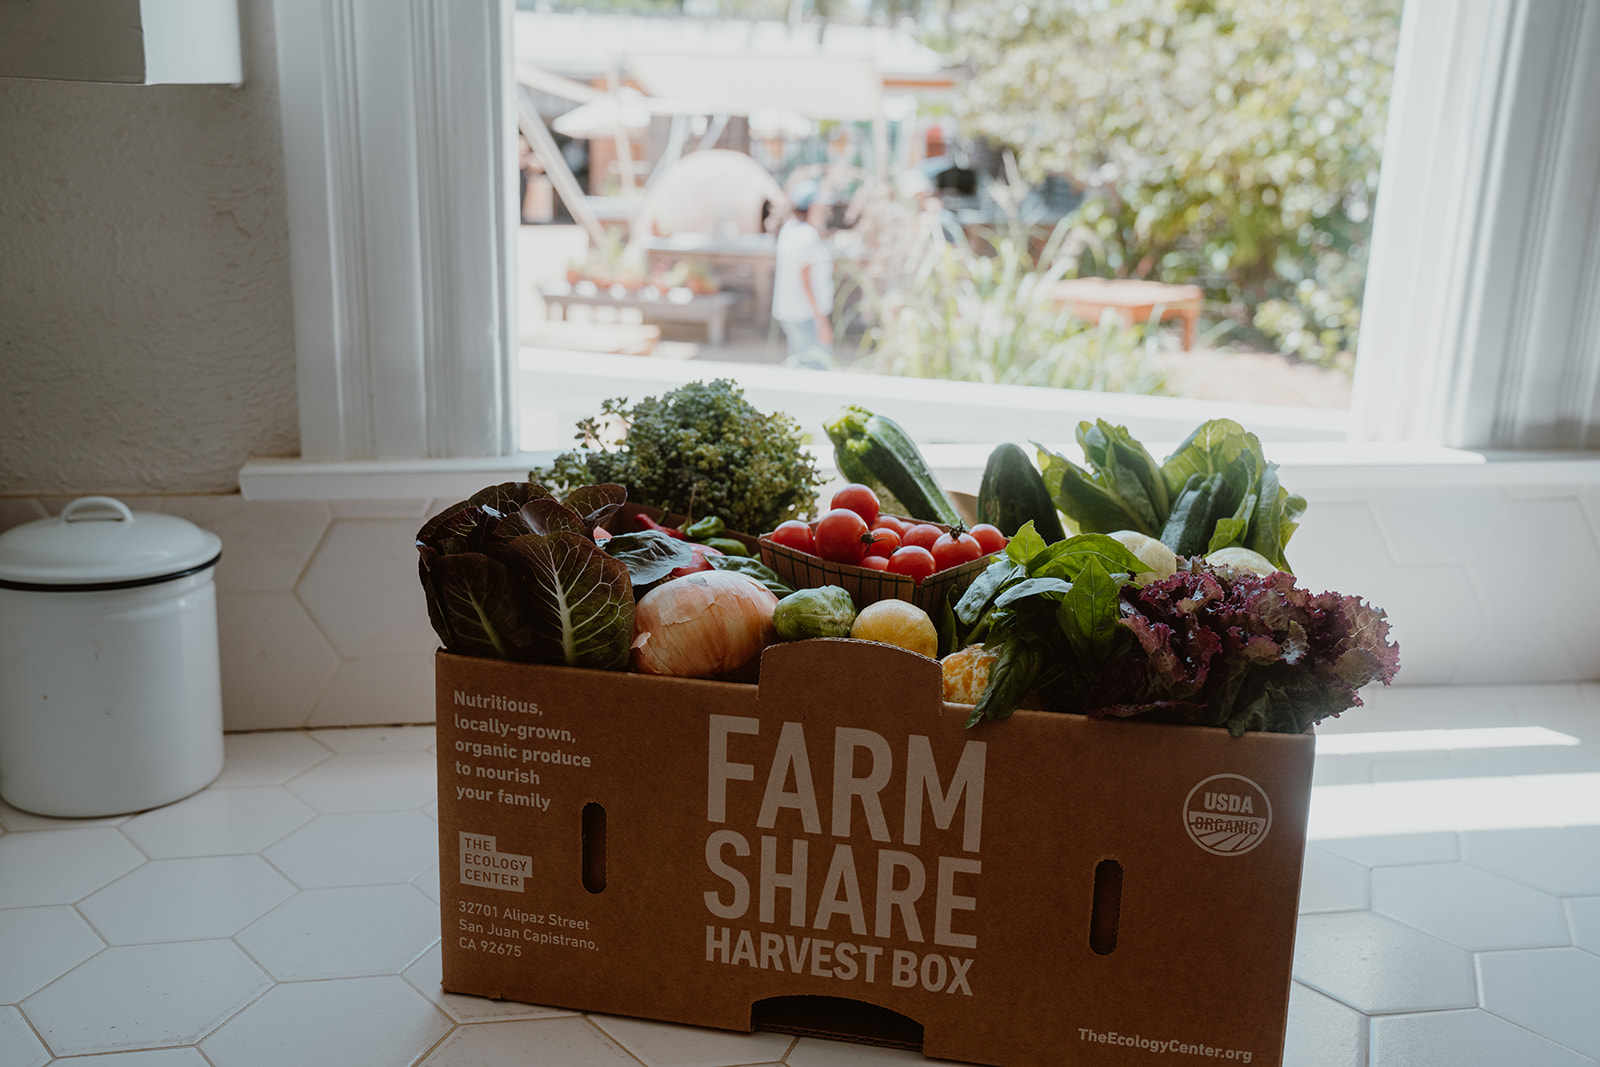 Harvest box filled with organic produce by open window.